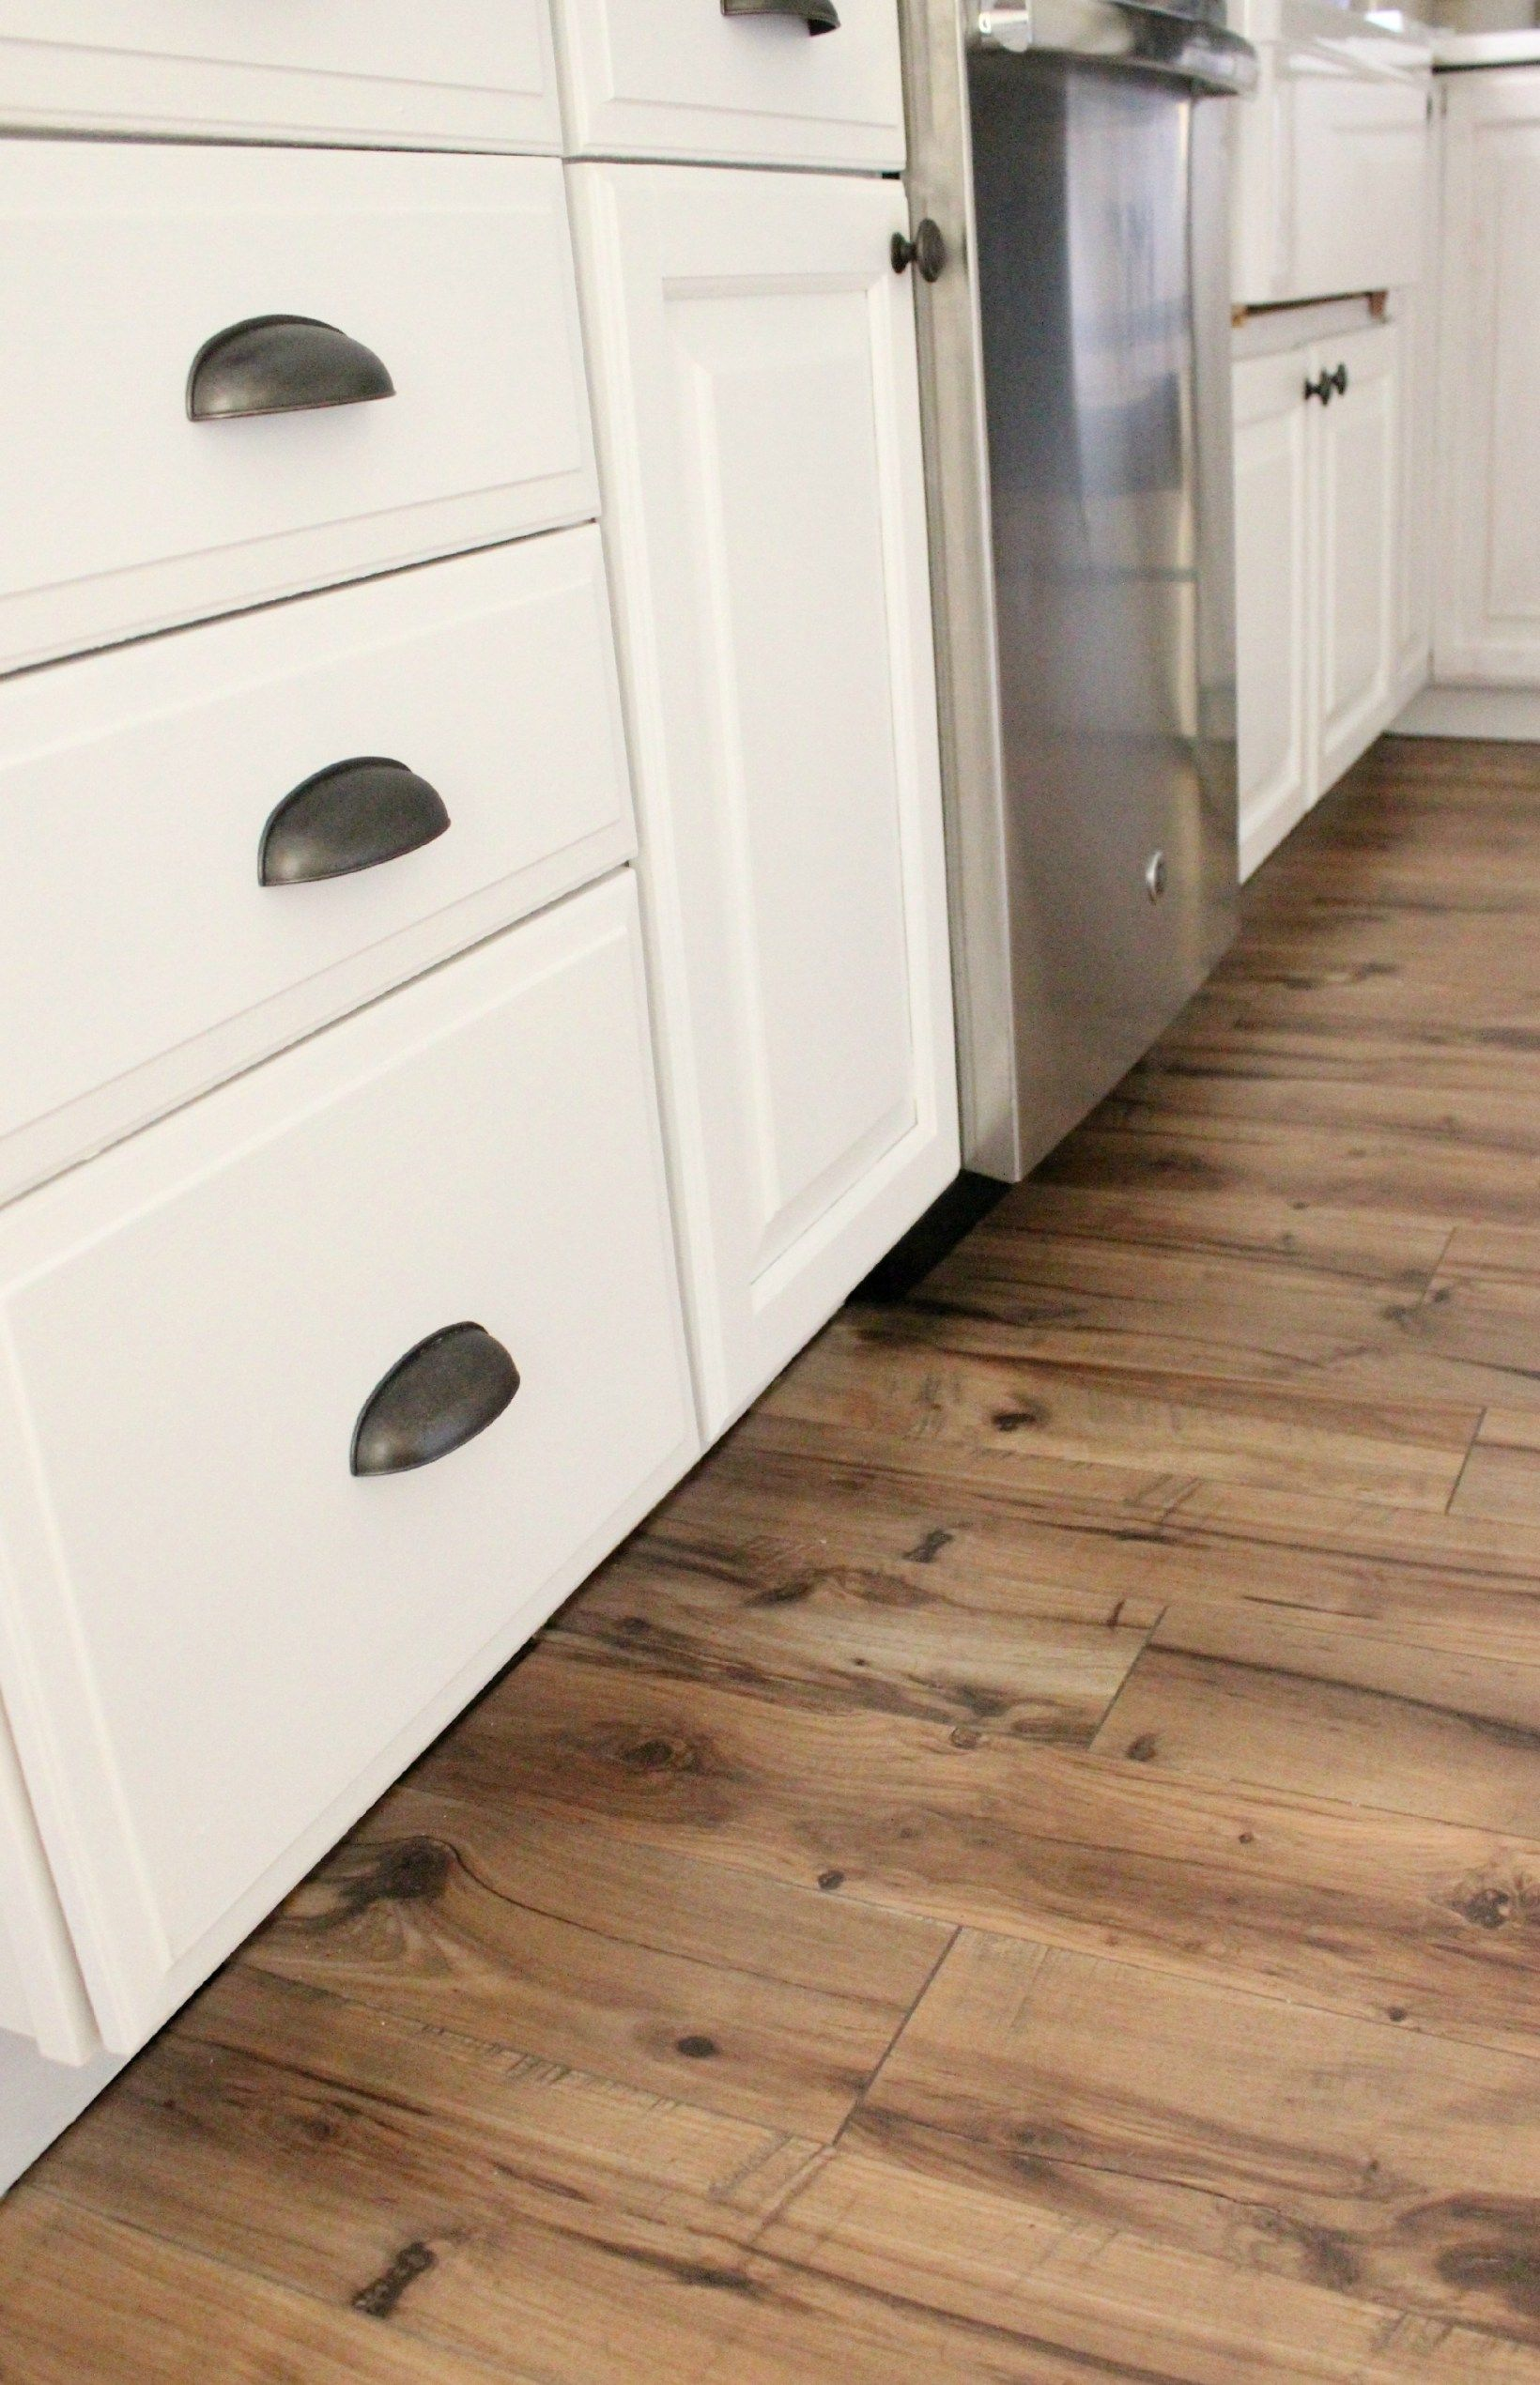 Home why and how we chose our pergo flooring laminate for Why laminate flooring